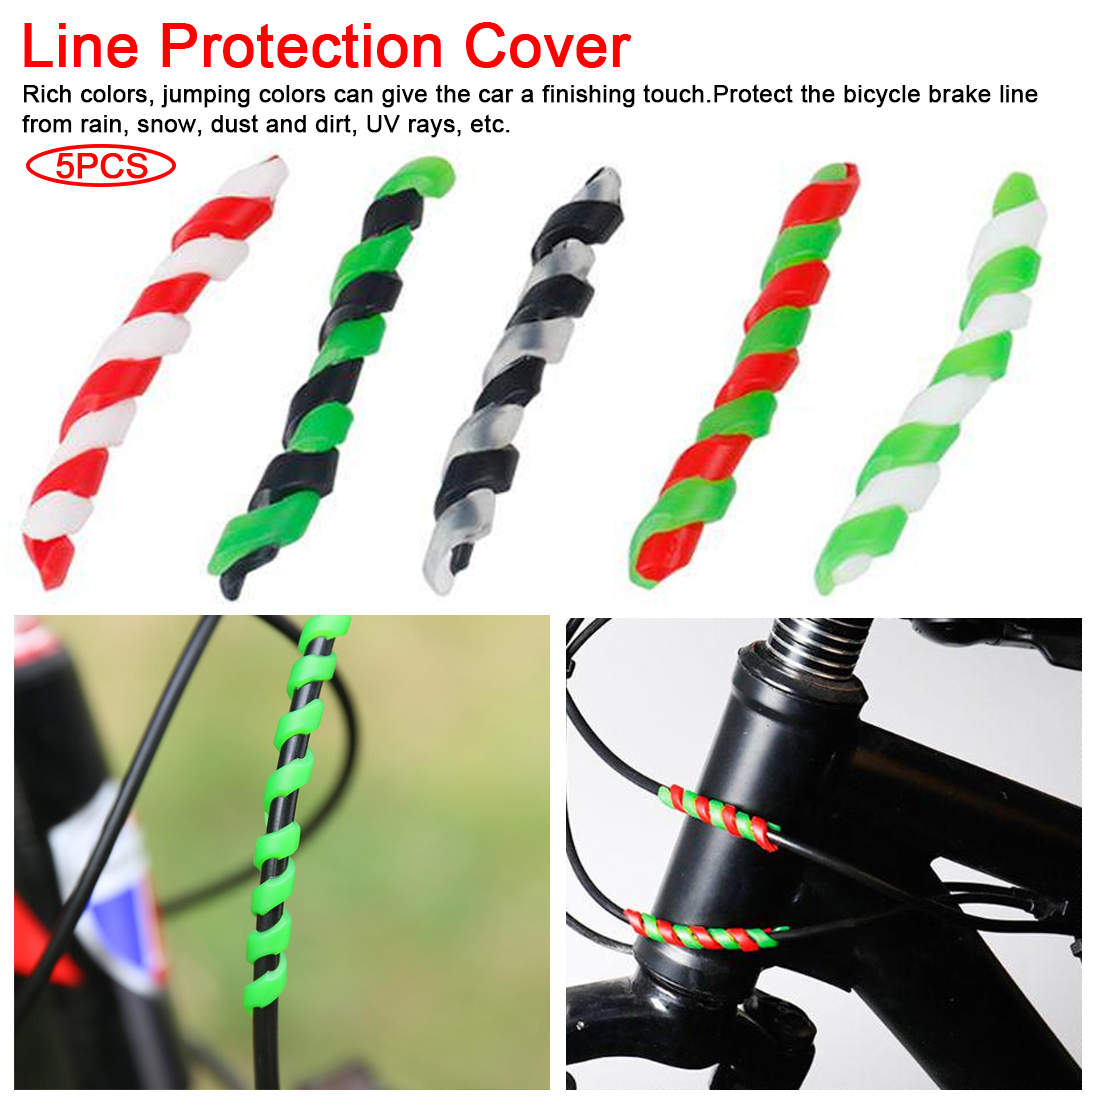 Bicycle AccessoriesSleeve New Bike Cover Protection Guards Brake Line Protector Care Cycling  Rubber Anti-friction Bike Guard